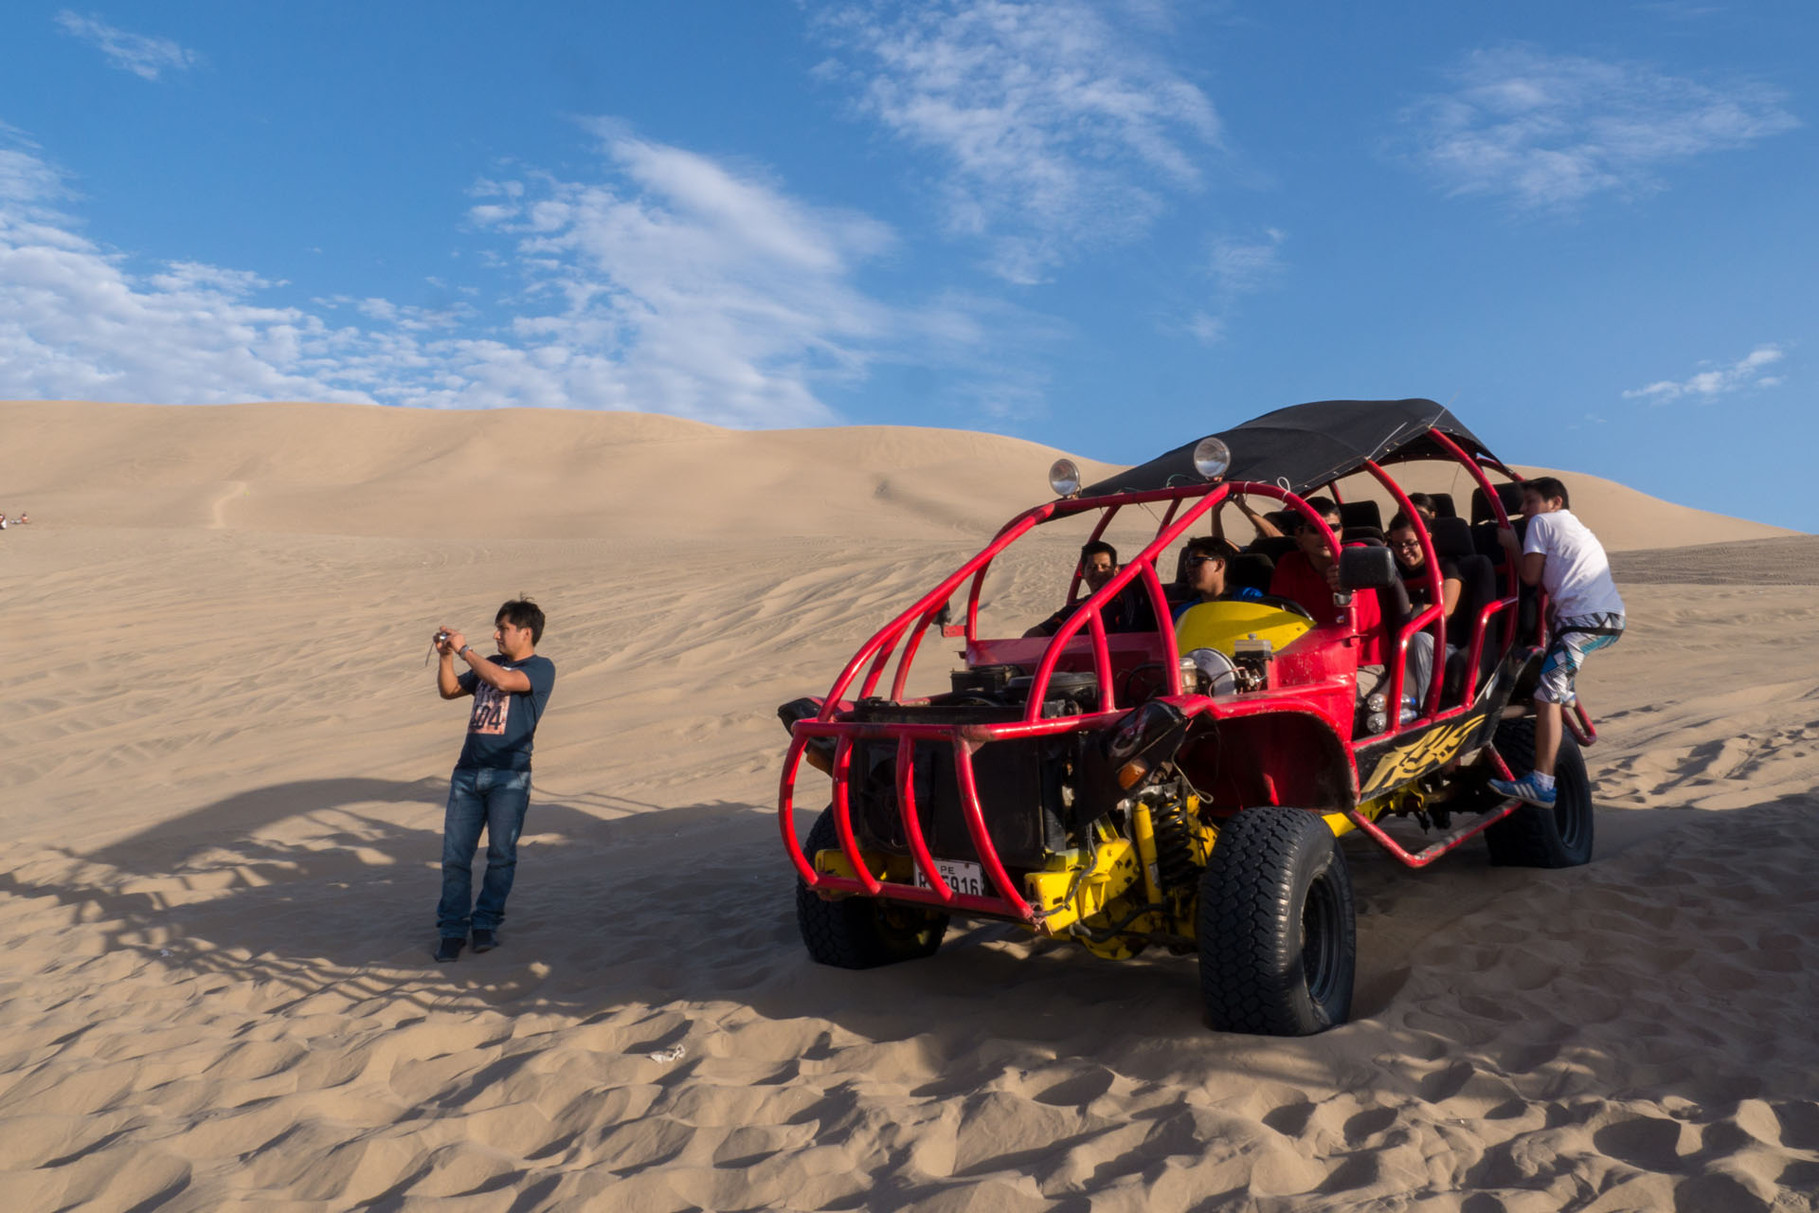 Sandbuggy tour in the dunes around Huacachina